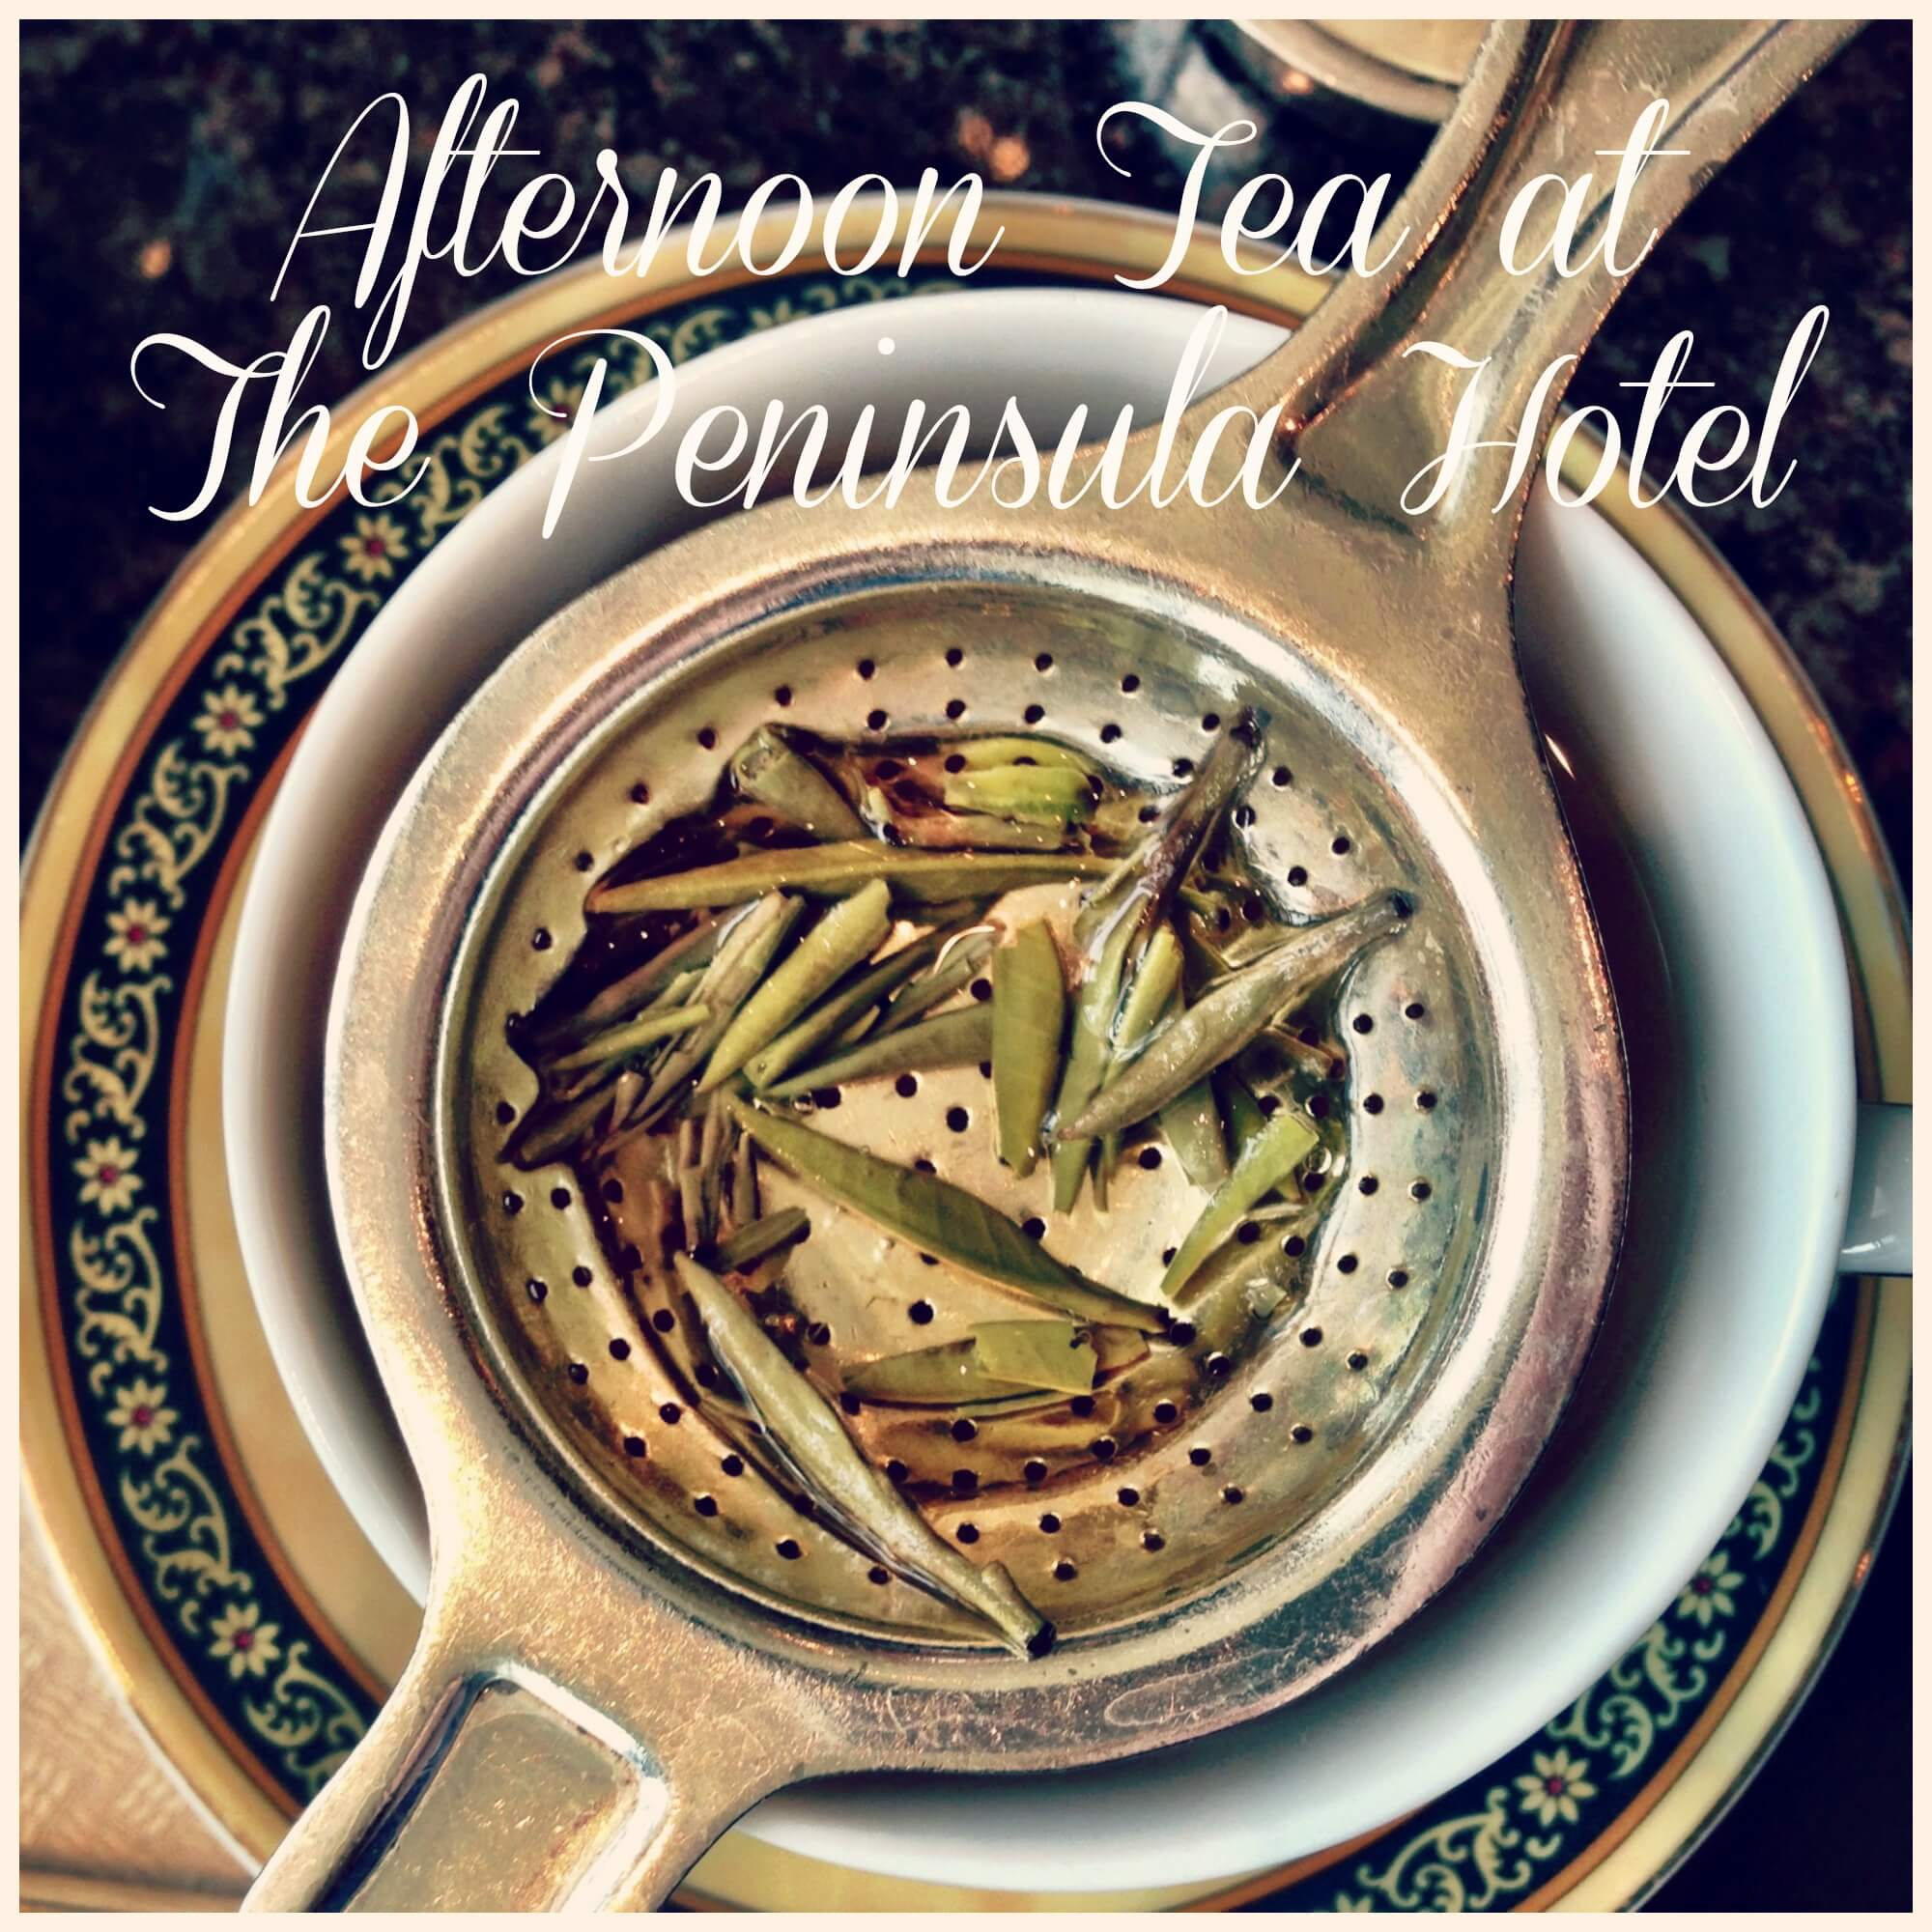 Tea at the Peninsula Hotel: Chicago